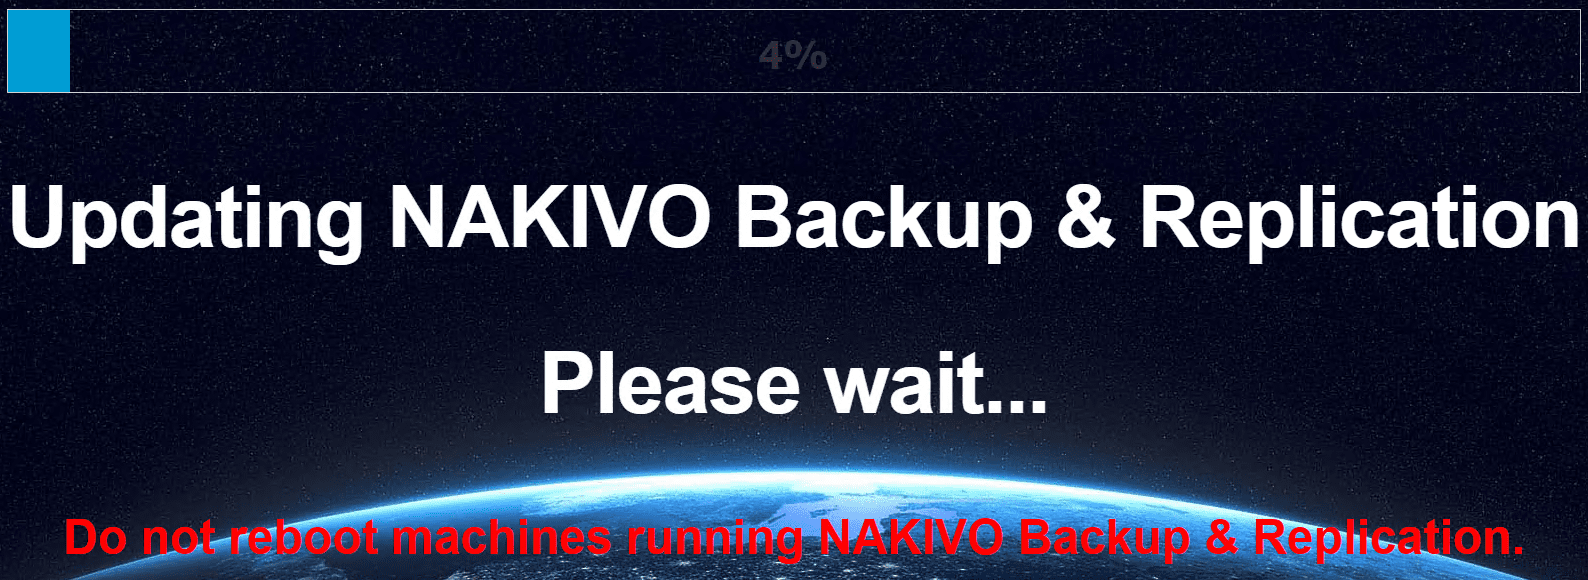 The-NAKIVO-Backup-Replication-v8.5.2-update-begins-applying-to-the-appliance NAKIVO Backup and Replication v8.5.2 Released with VMware vSphere 6.7 Update 2 Support